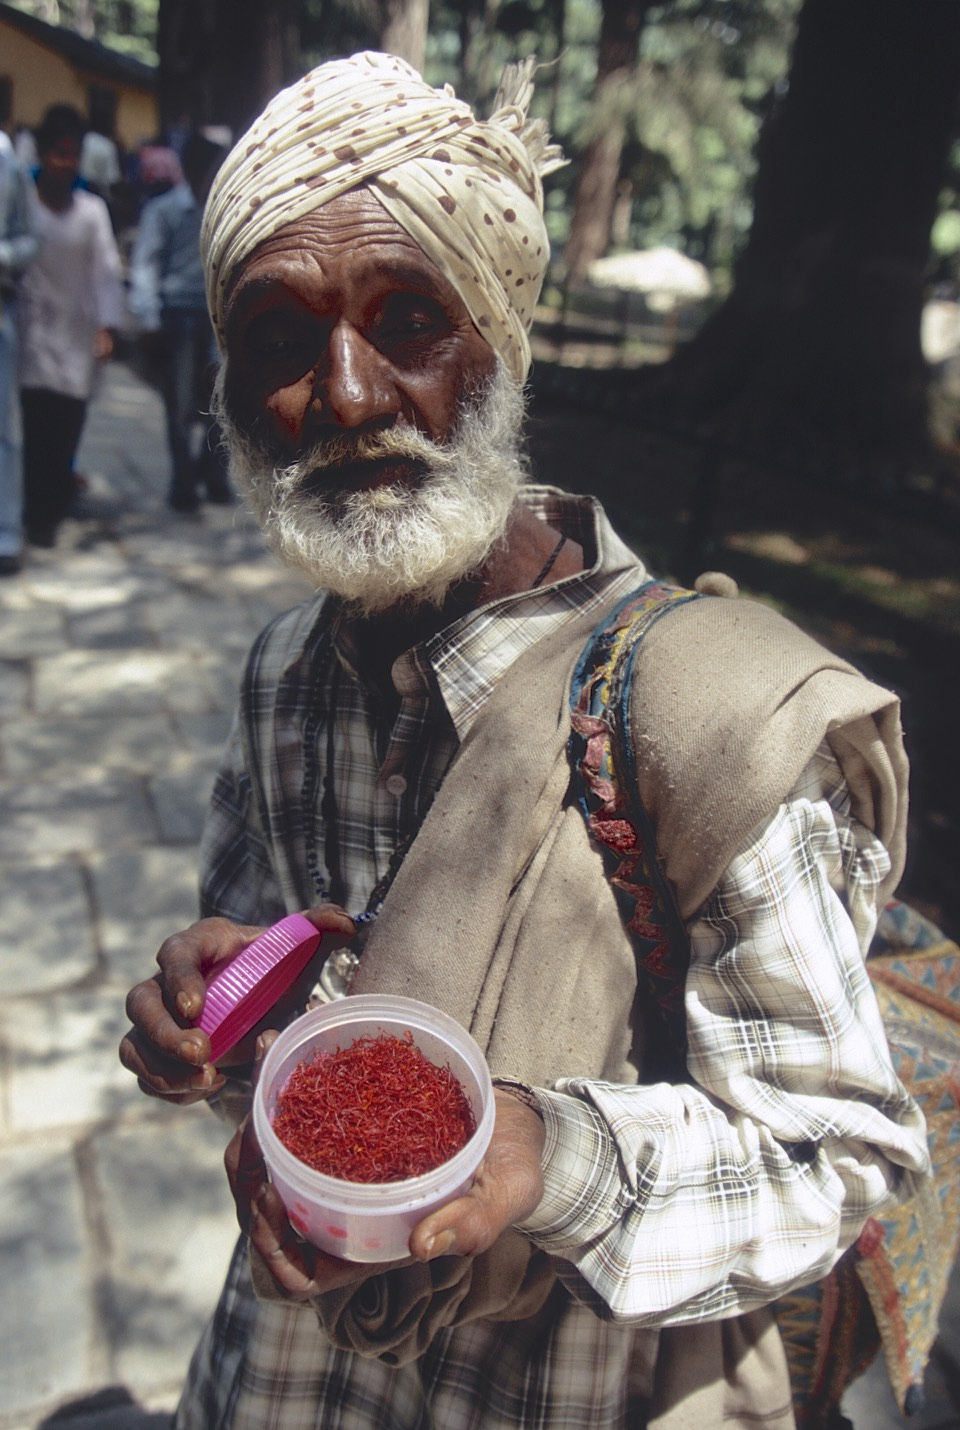 Saffron Seller in Manali